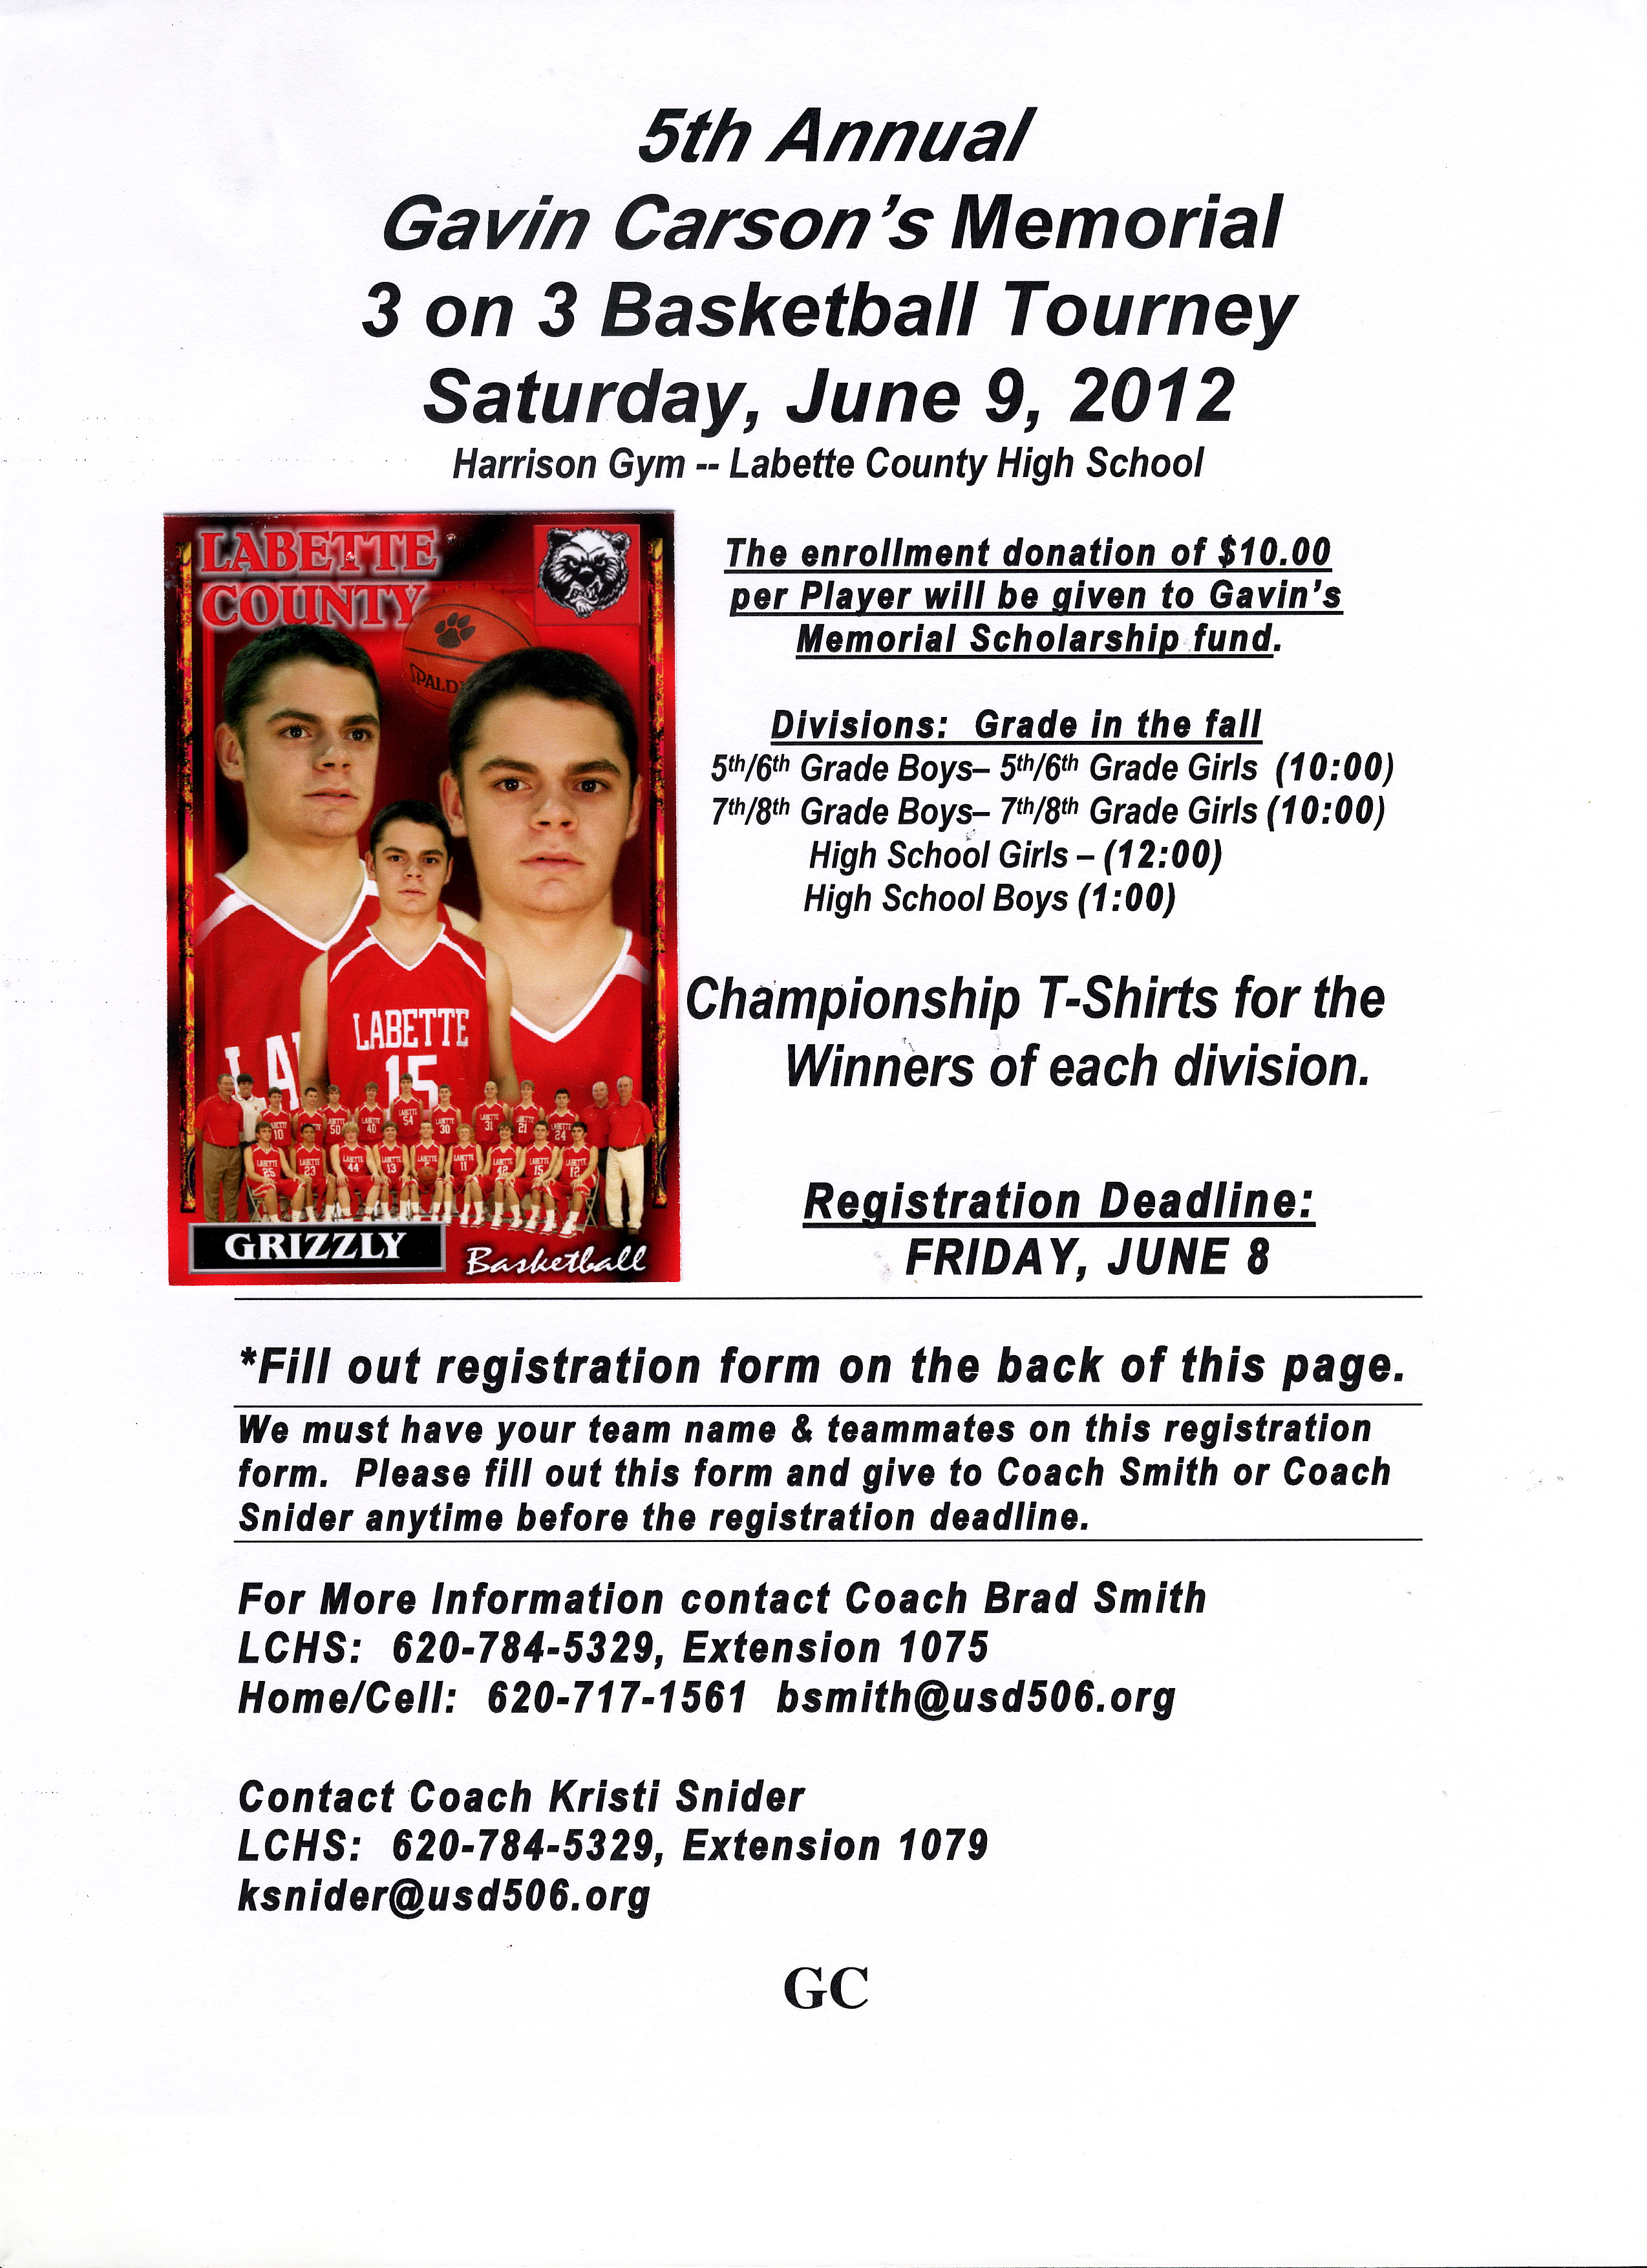 Labette county usd 506 5th annual gavin carsons memorial 3 on 3 5th annual gavin carsons memorial 3 on 3 basketball tournament inserted image registration form pronofoot35fo Choice Image